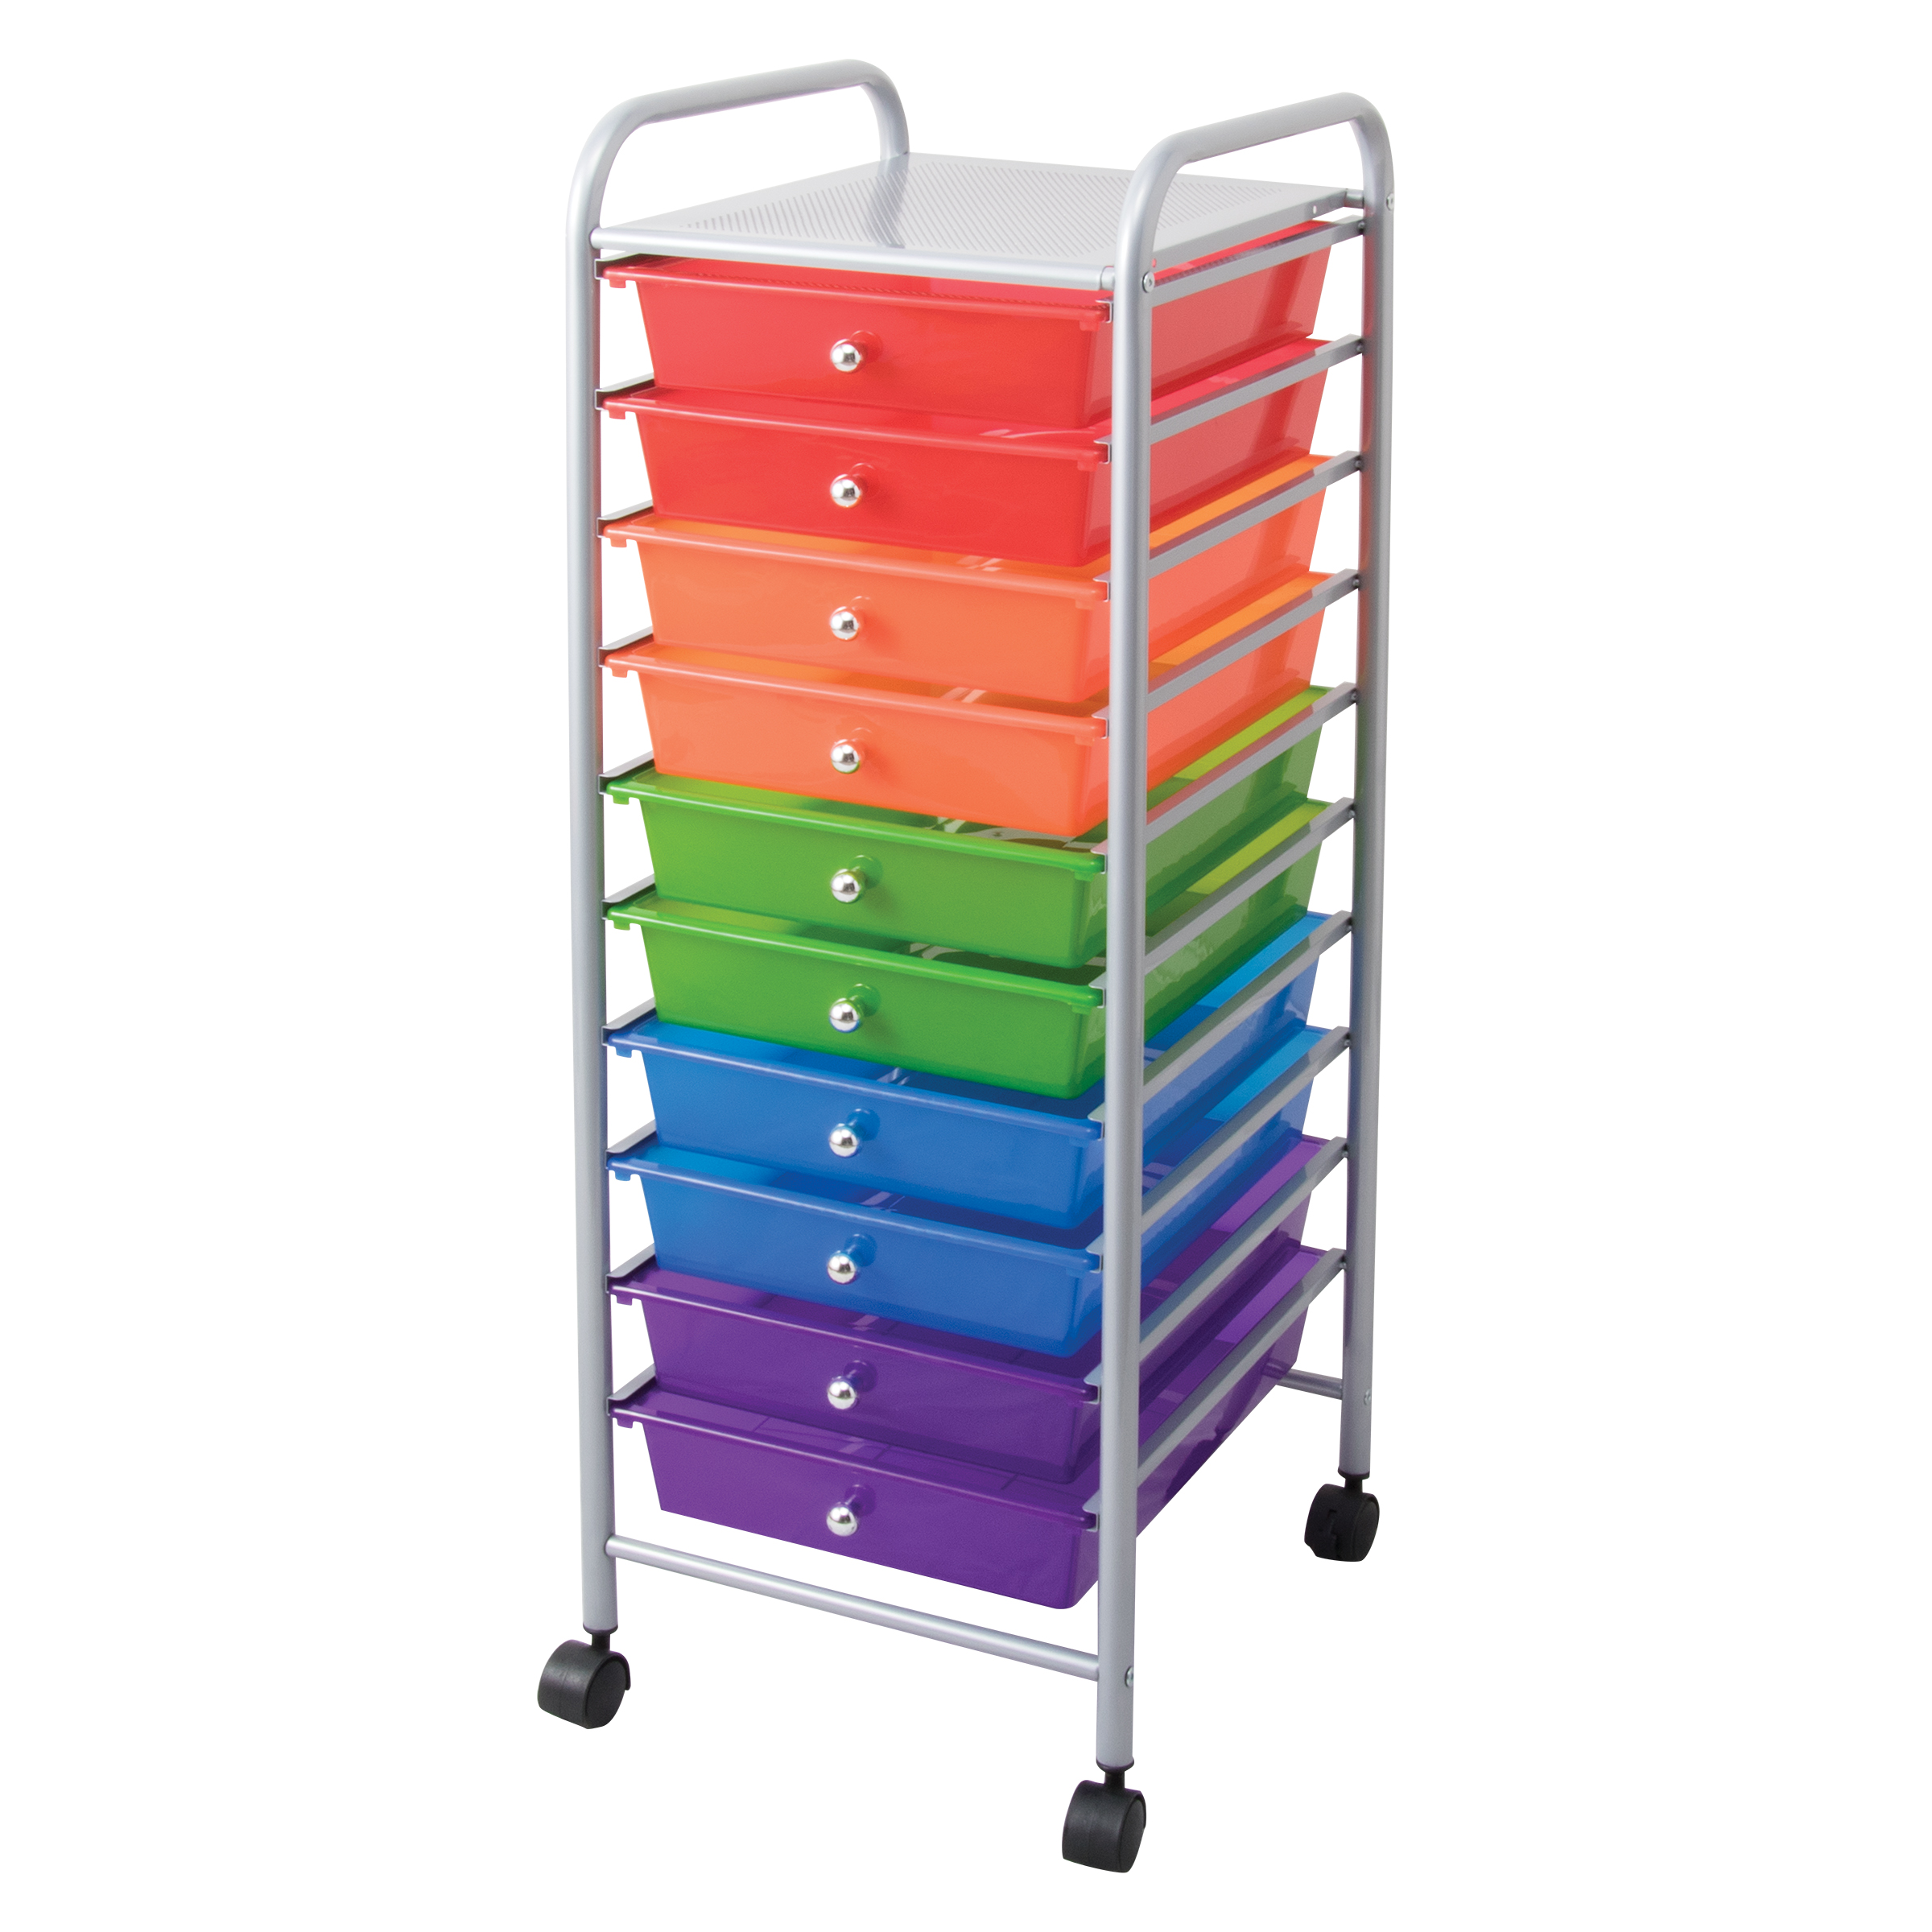 10 Drawer Rolling Organizer, Multi Color